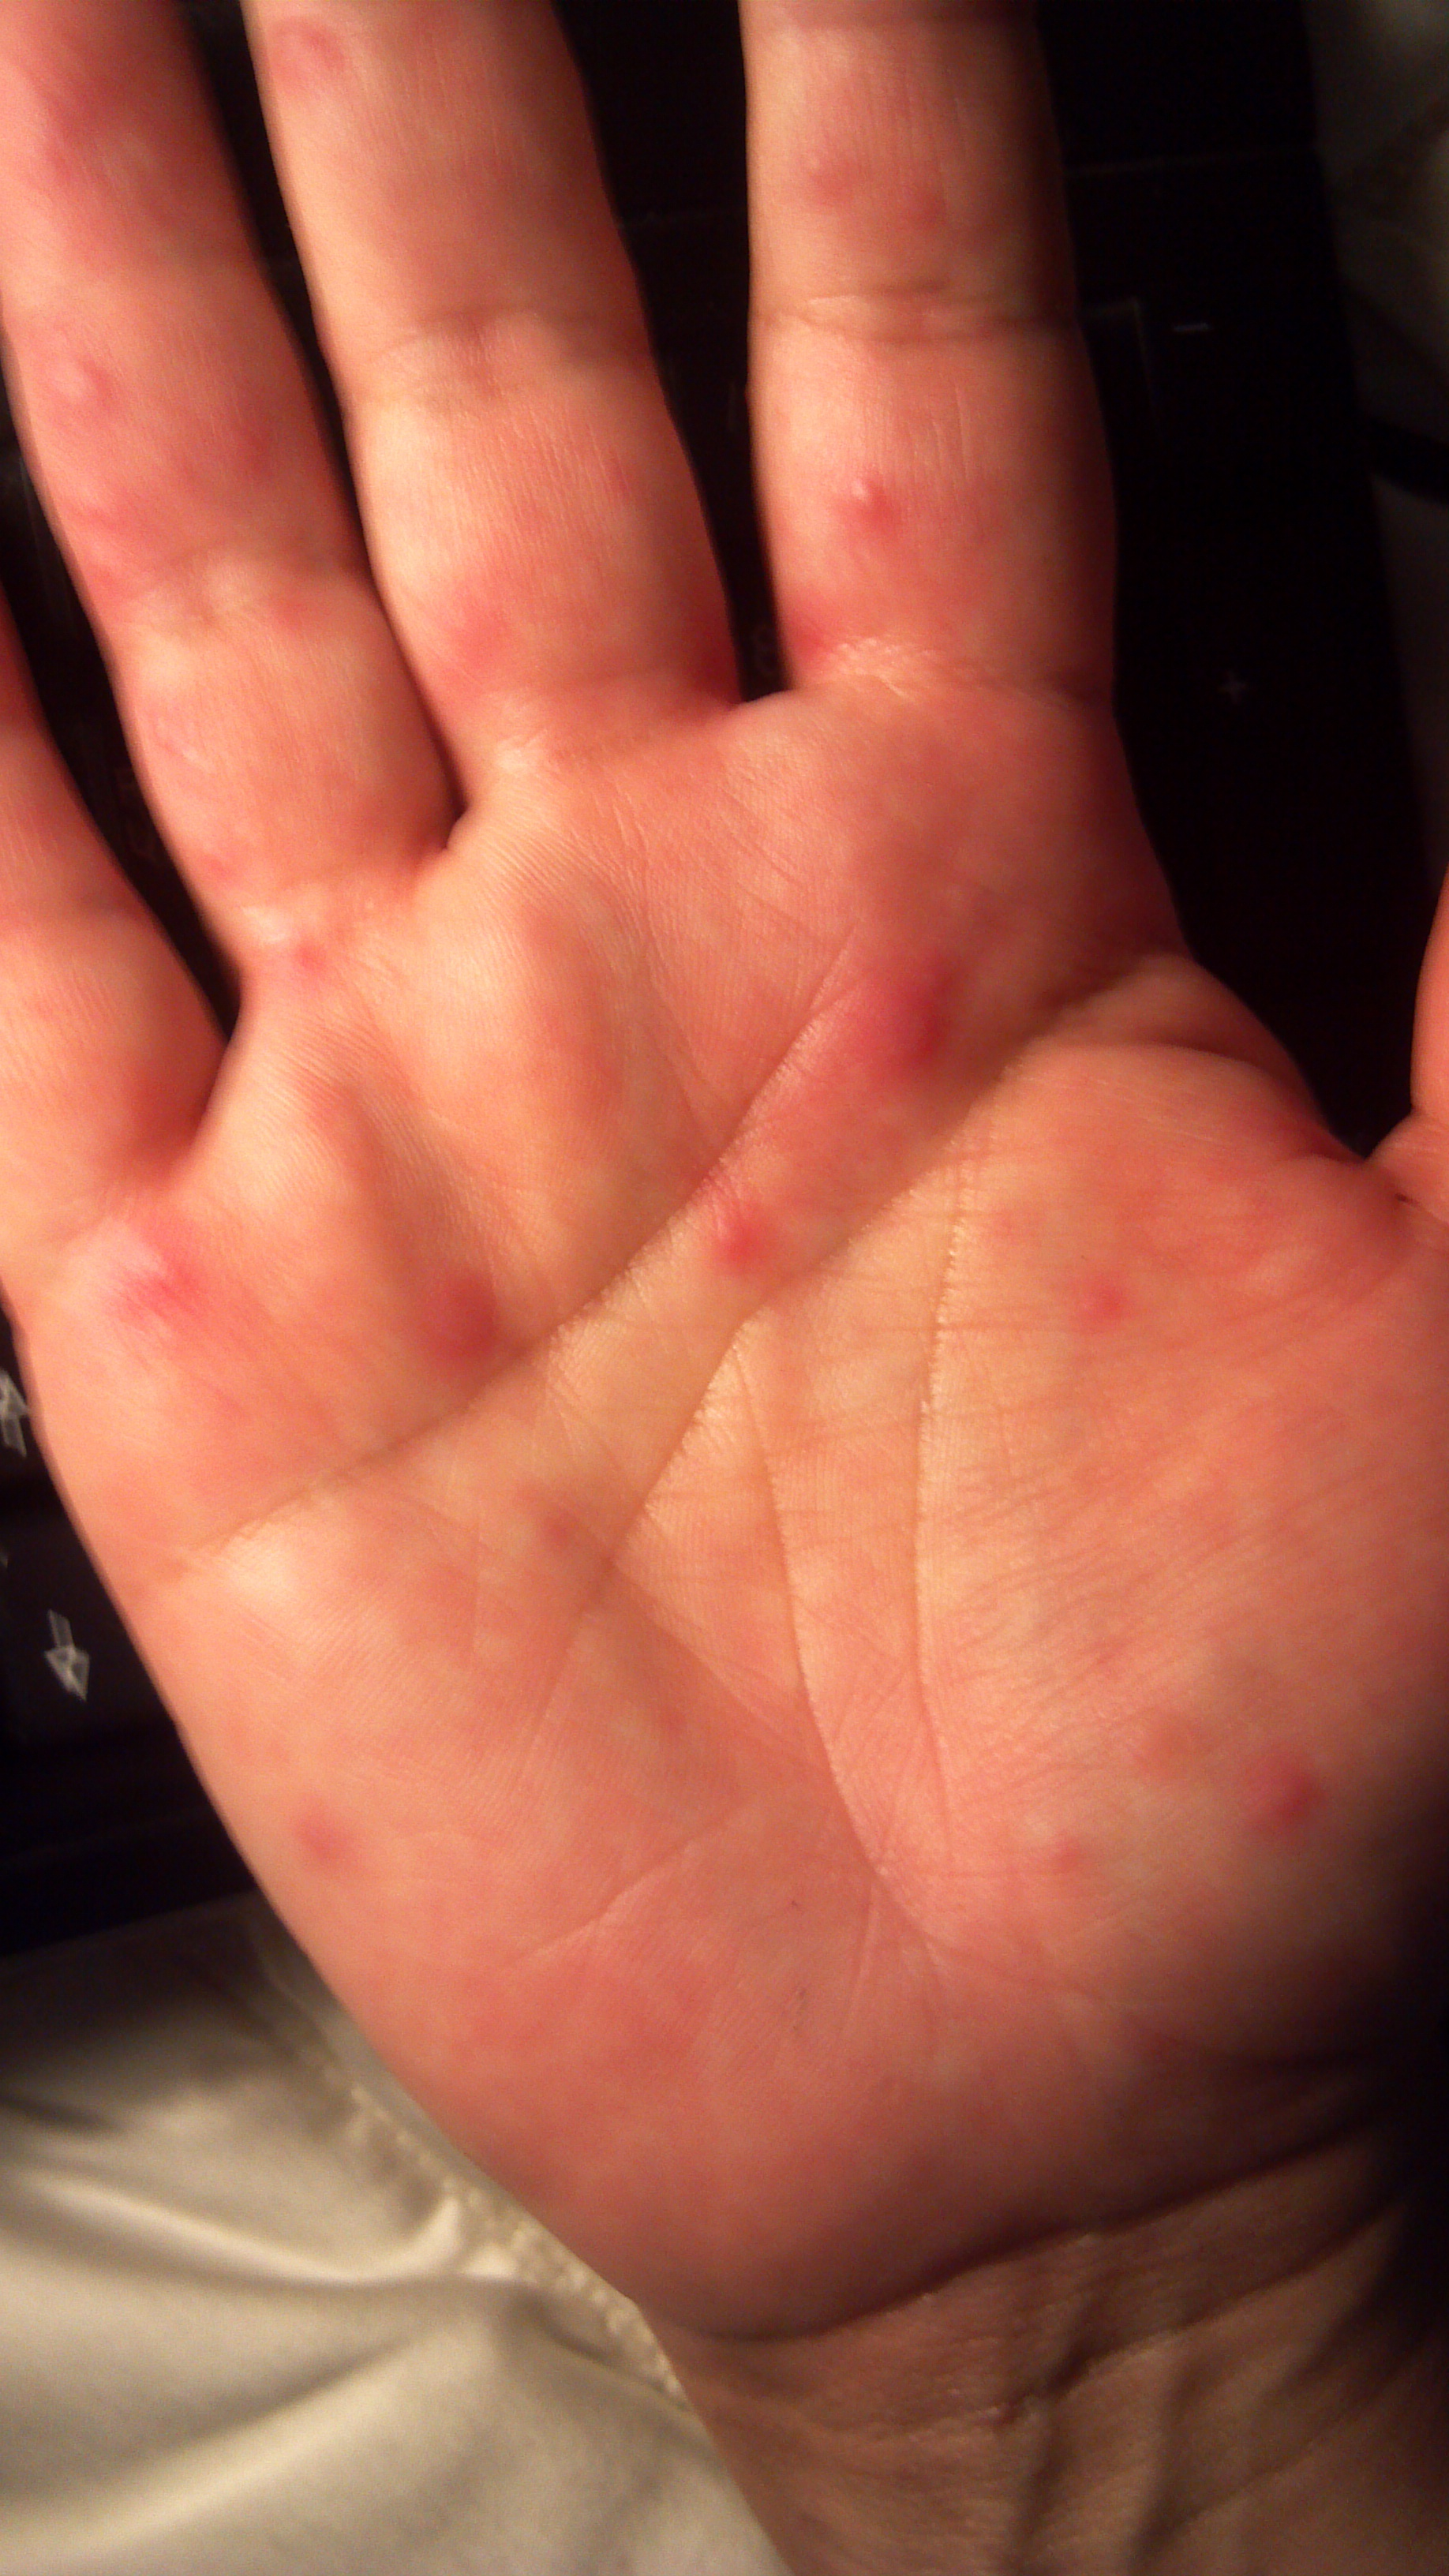 red rashes on hands